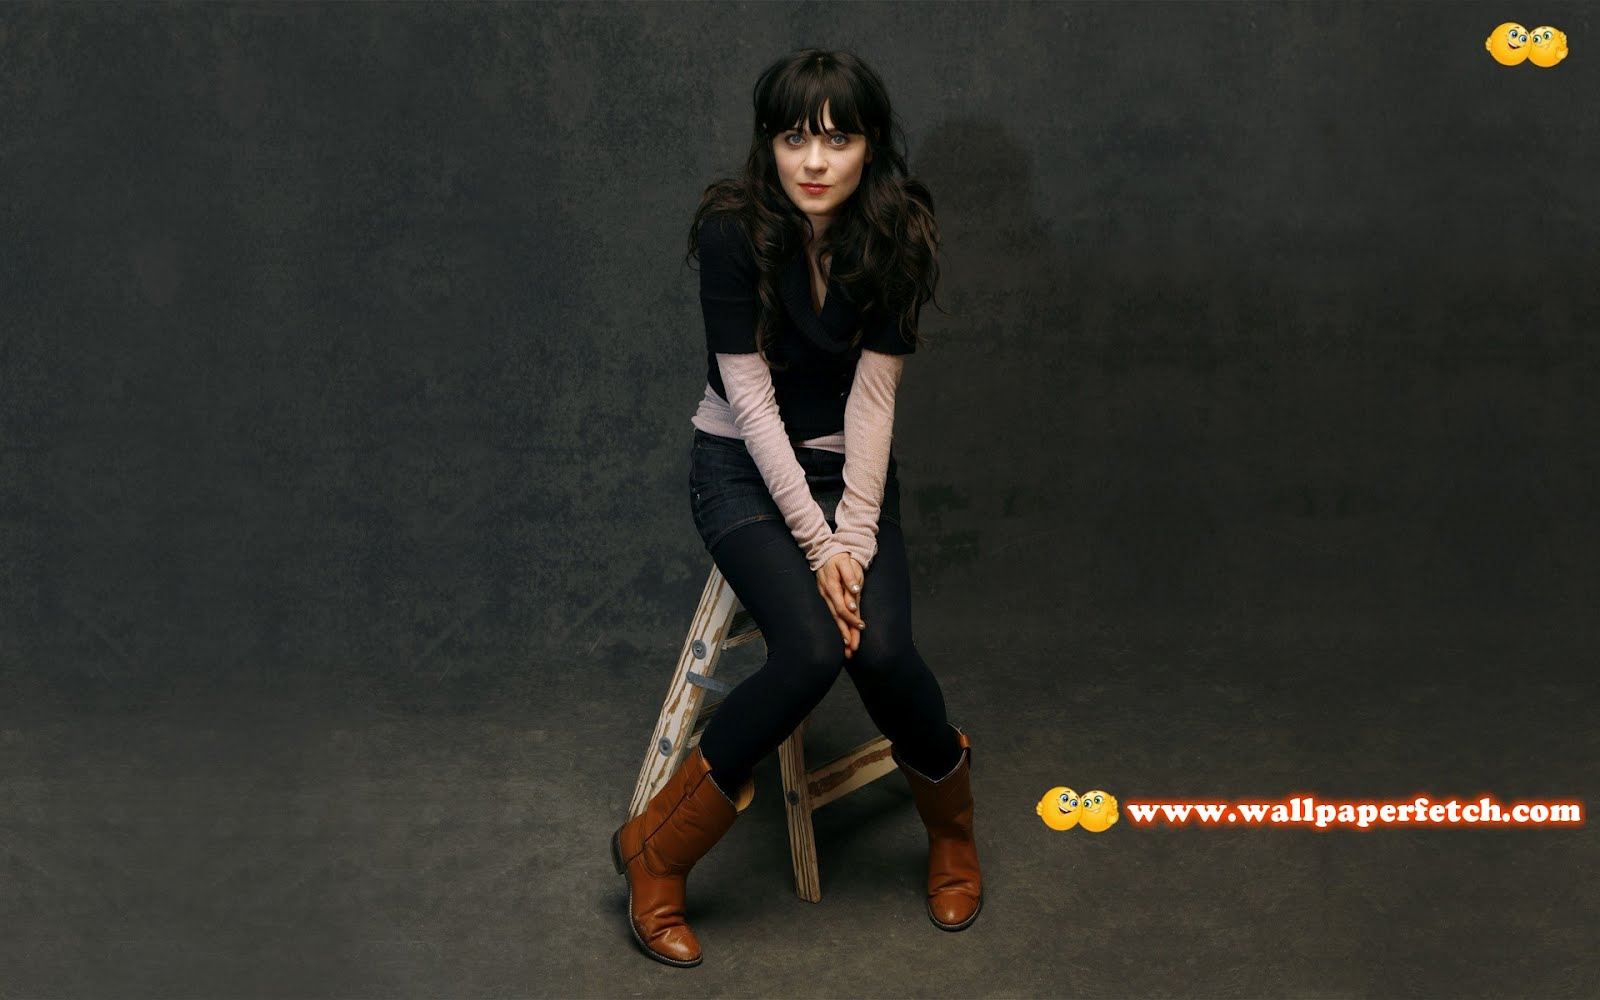 zooey deschanel hot 1920 - photo #31